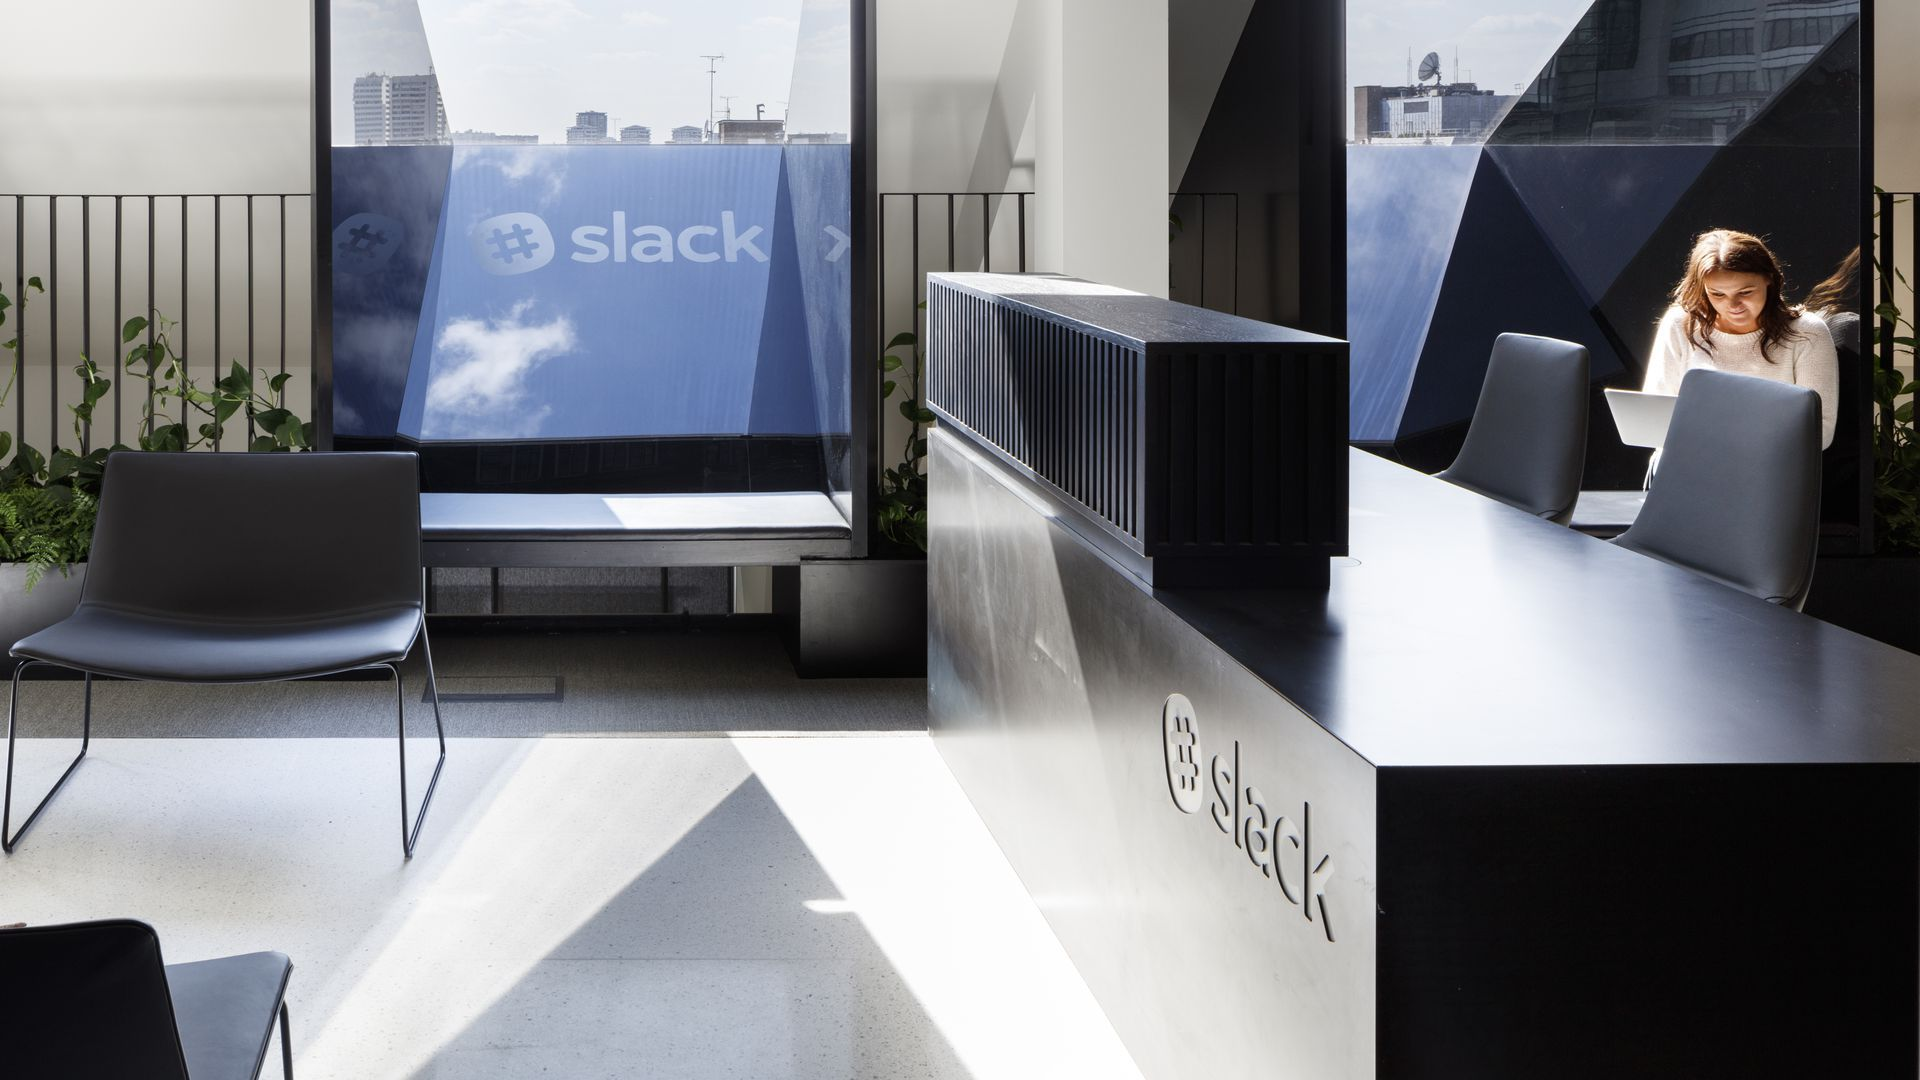 Office lobby of Slack. With woman sitting at a desk and a TV on.